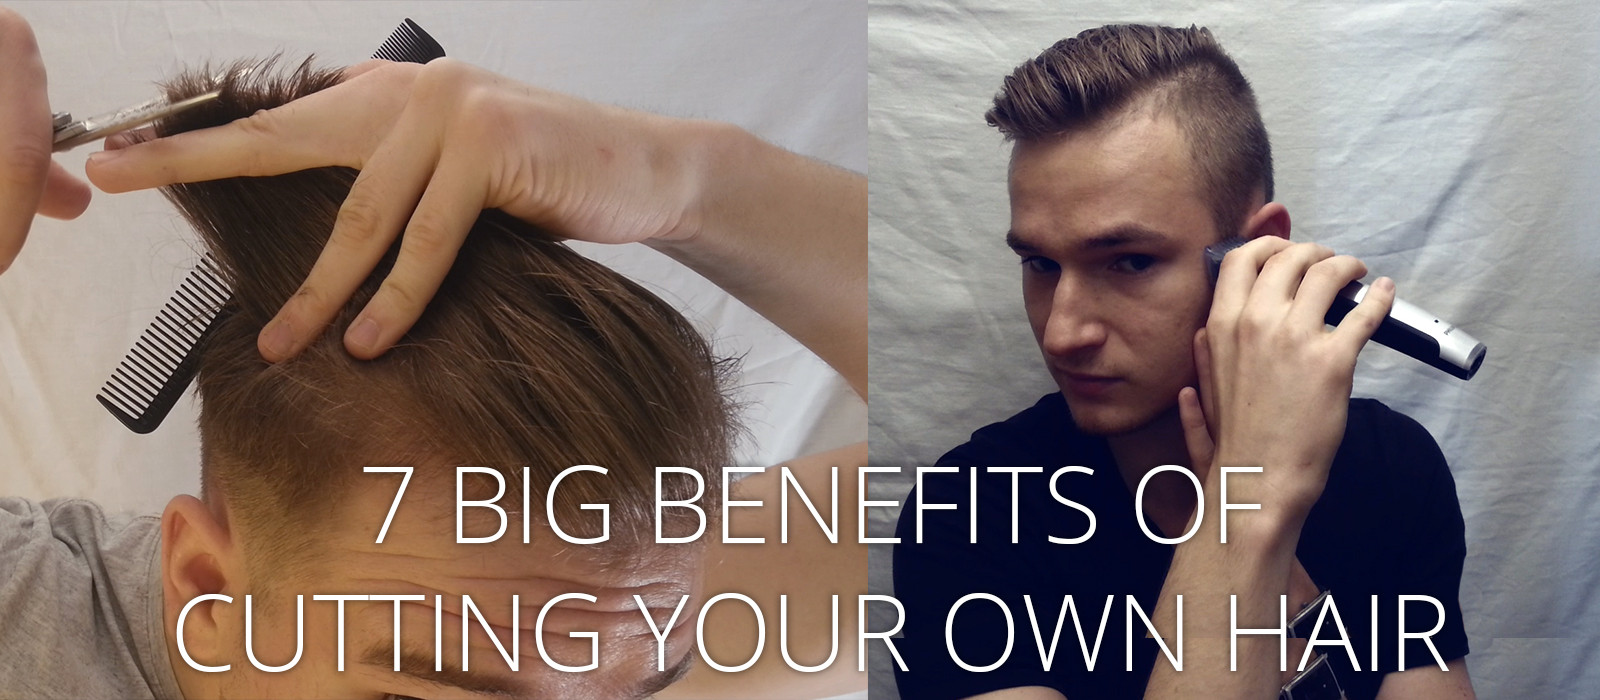 Best ideas about Cut Own Hair Male . Save or Pin 7 Big Benefits Cutting Your Own Hair Now.